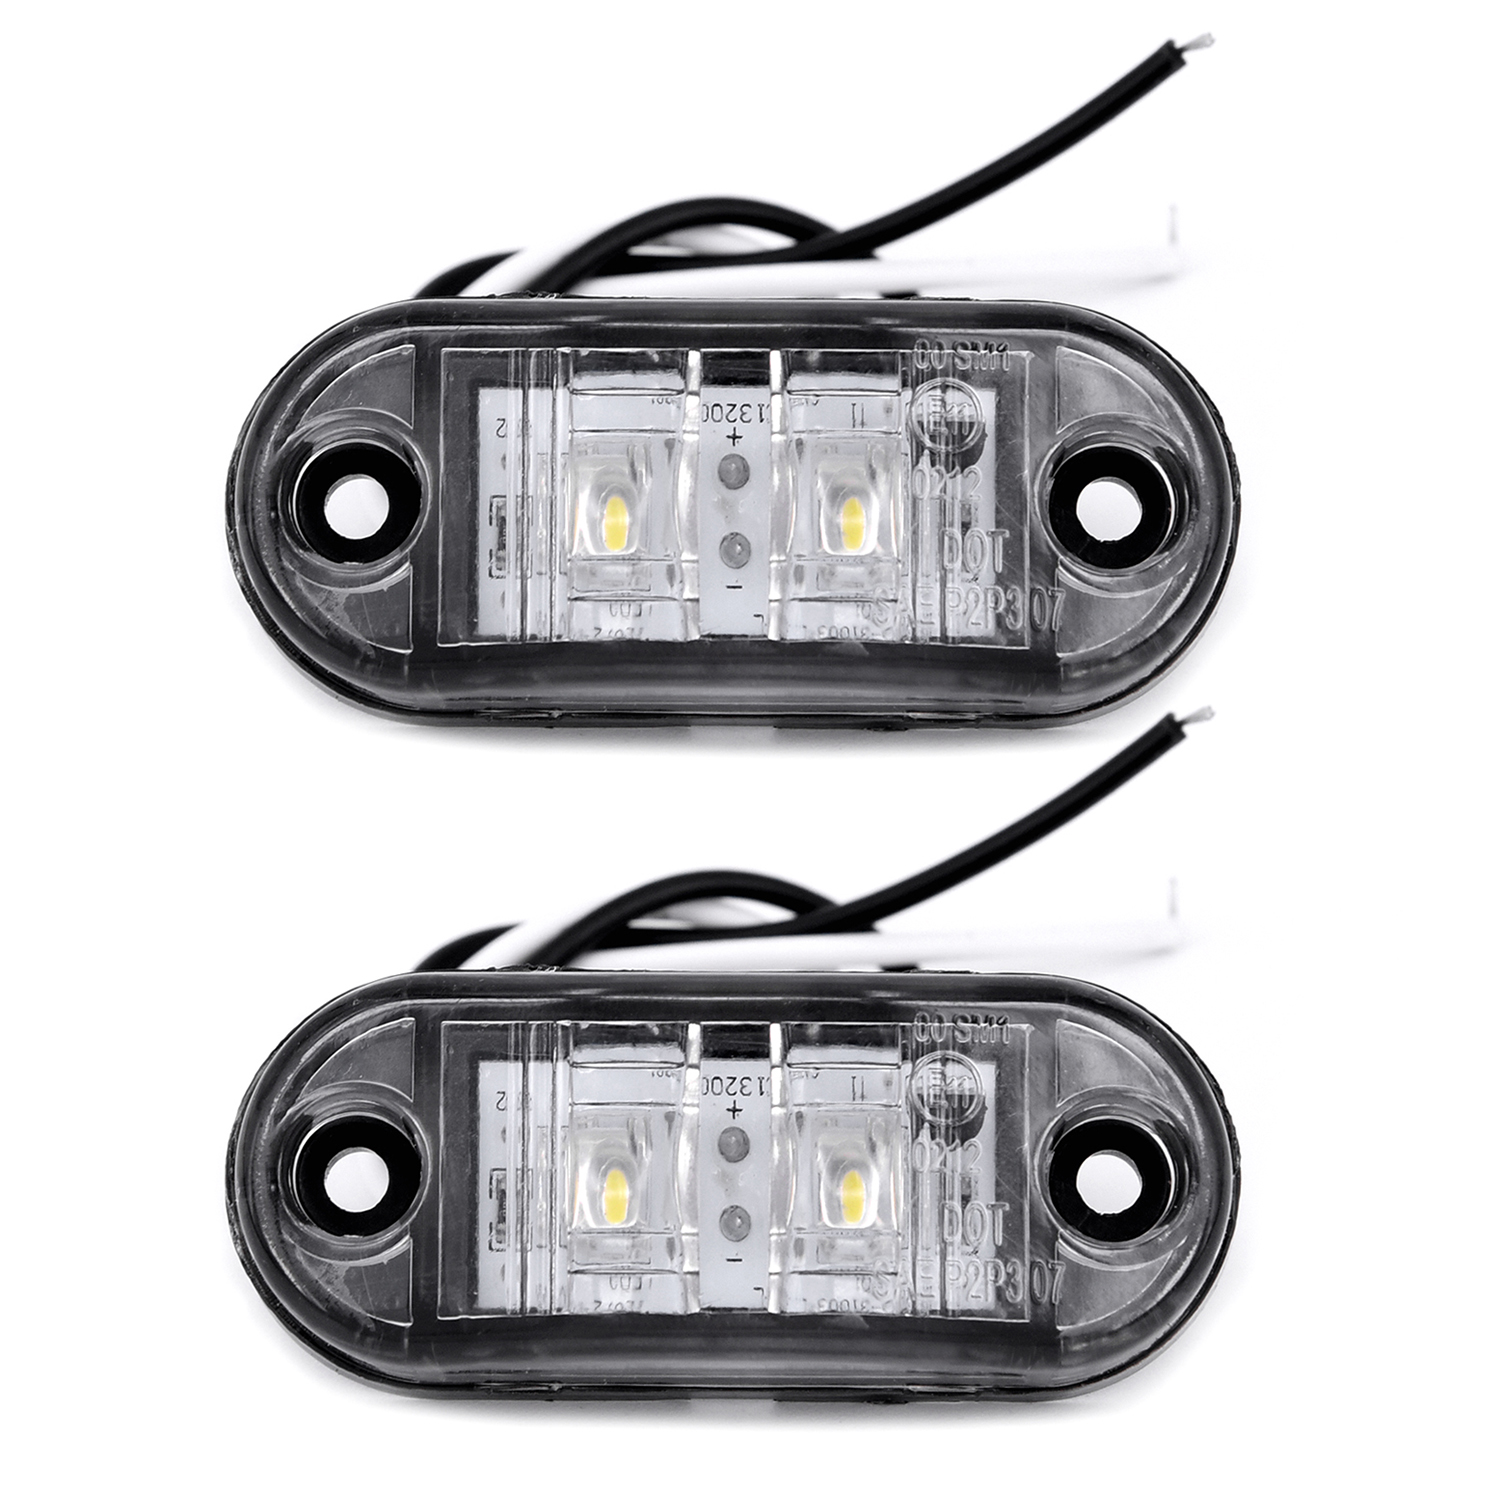 2Pcs/Set White 12V LED Car Side Marker Tail Light 24V Trailer Truck Lamp 66*28*18mm Auto Side Marker Lights Accessories